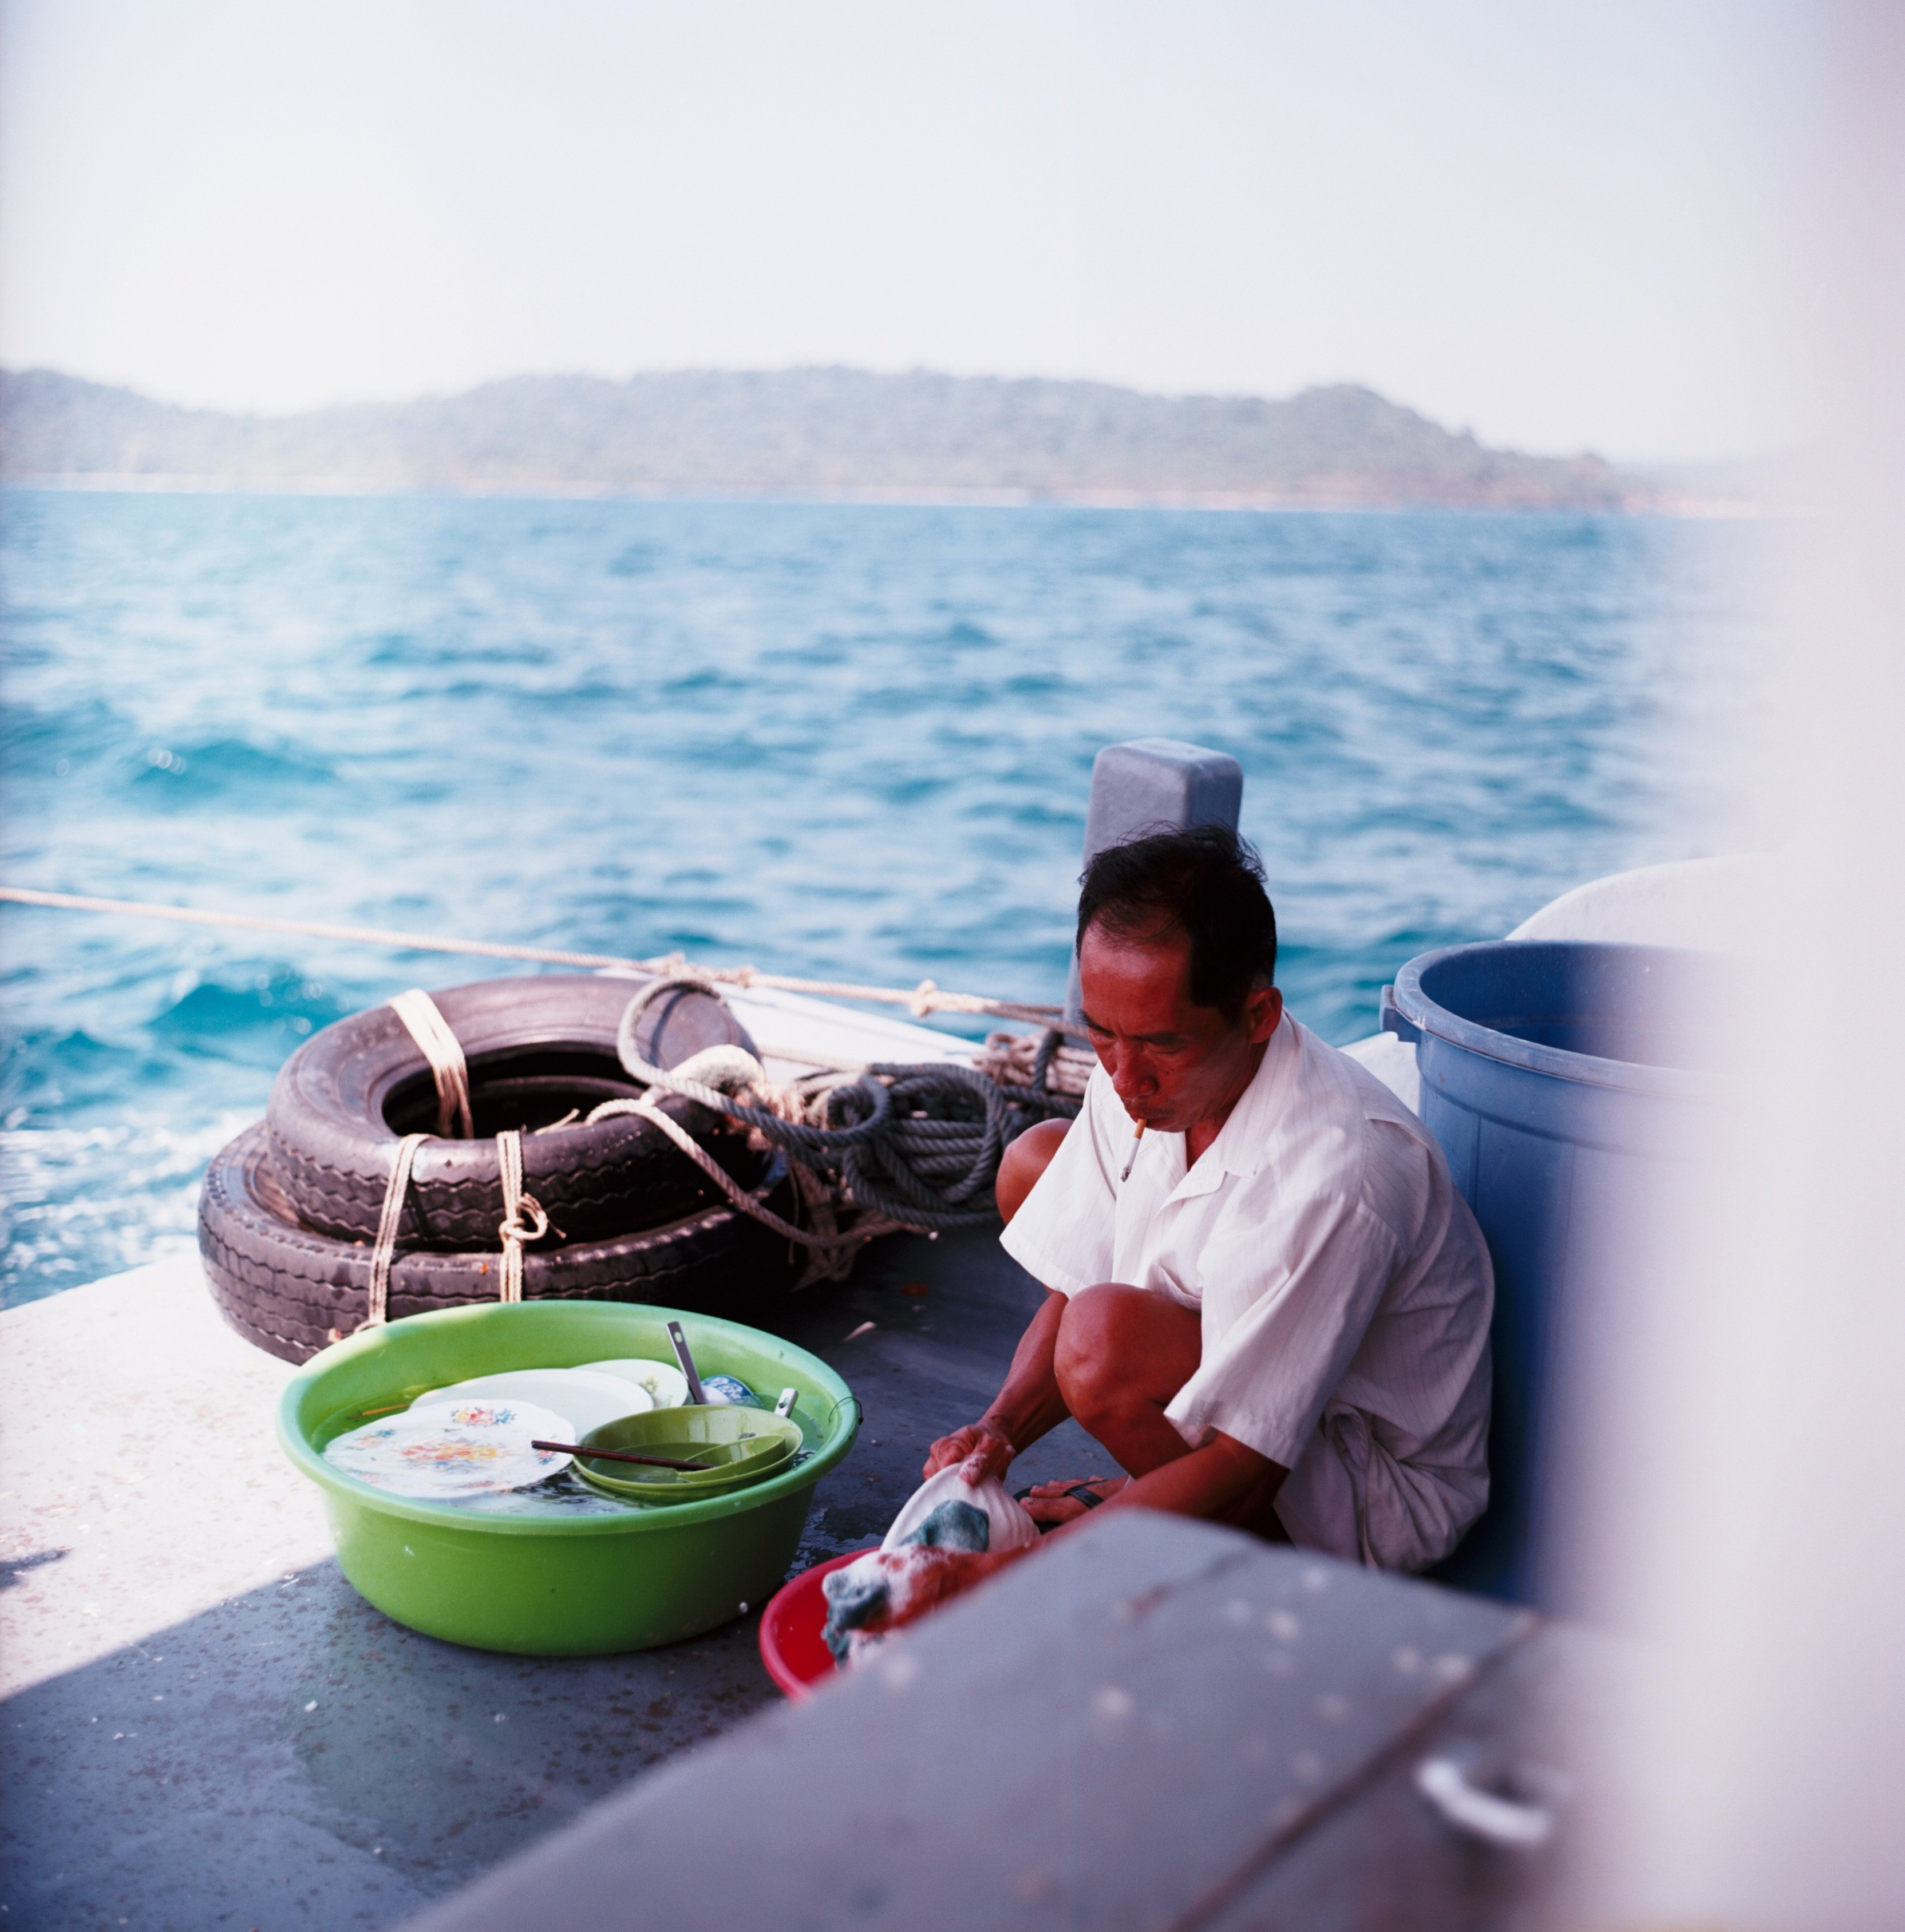 old man going about his work on the boat in Vietnam ocean